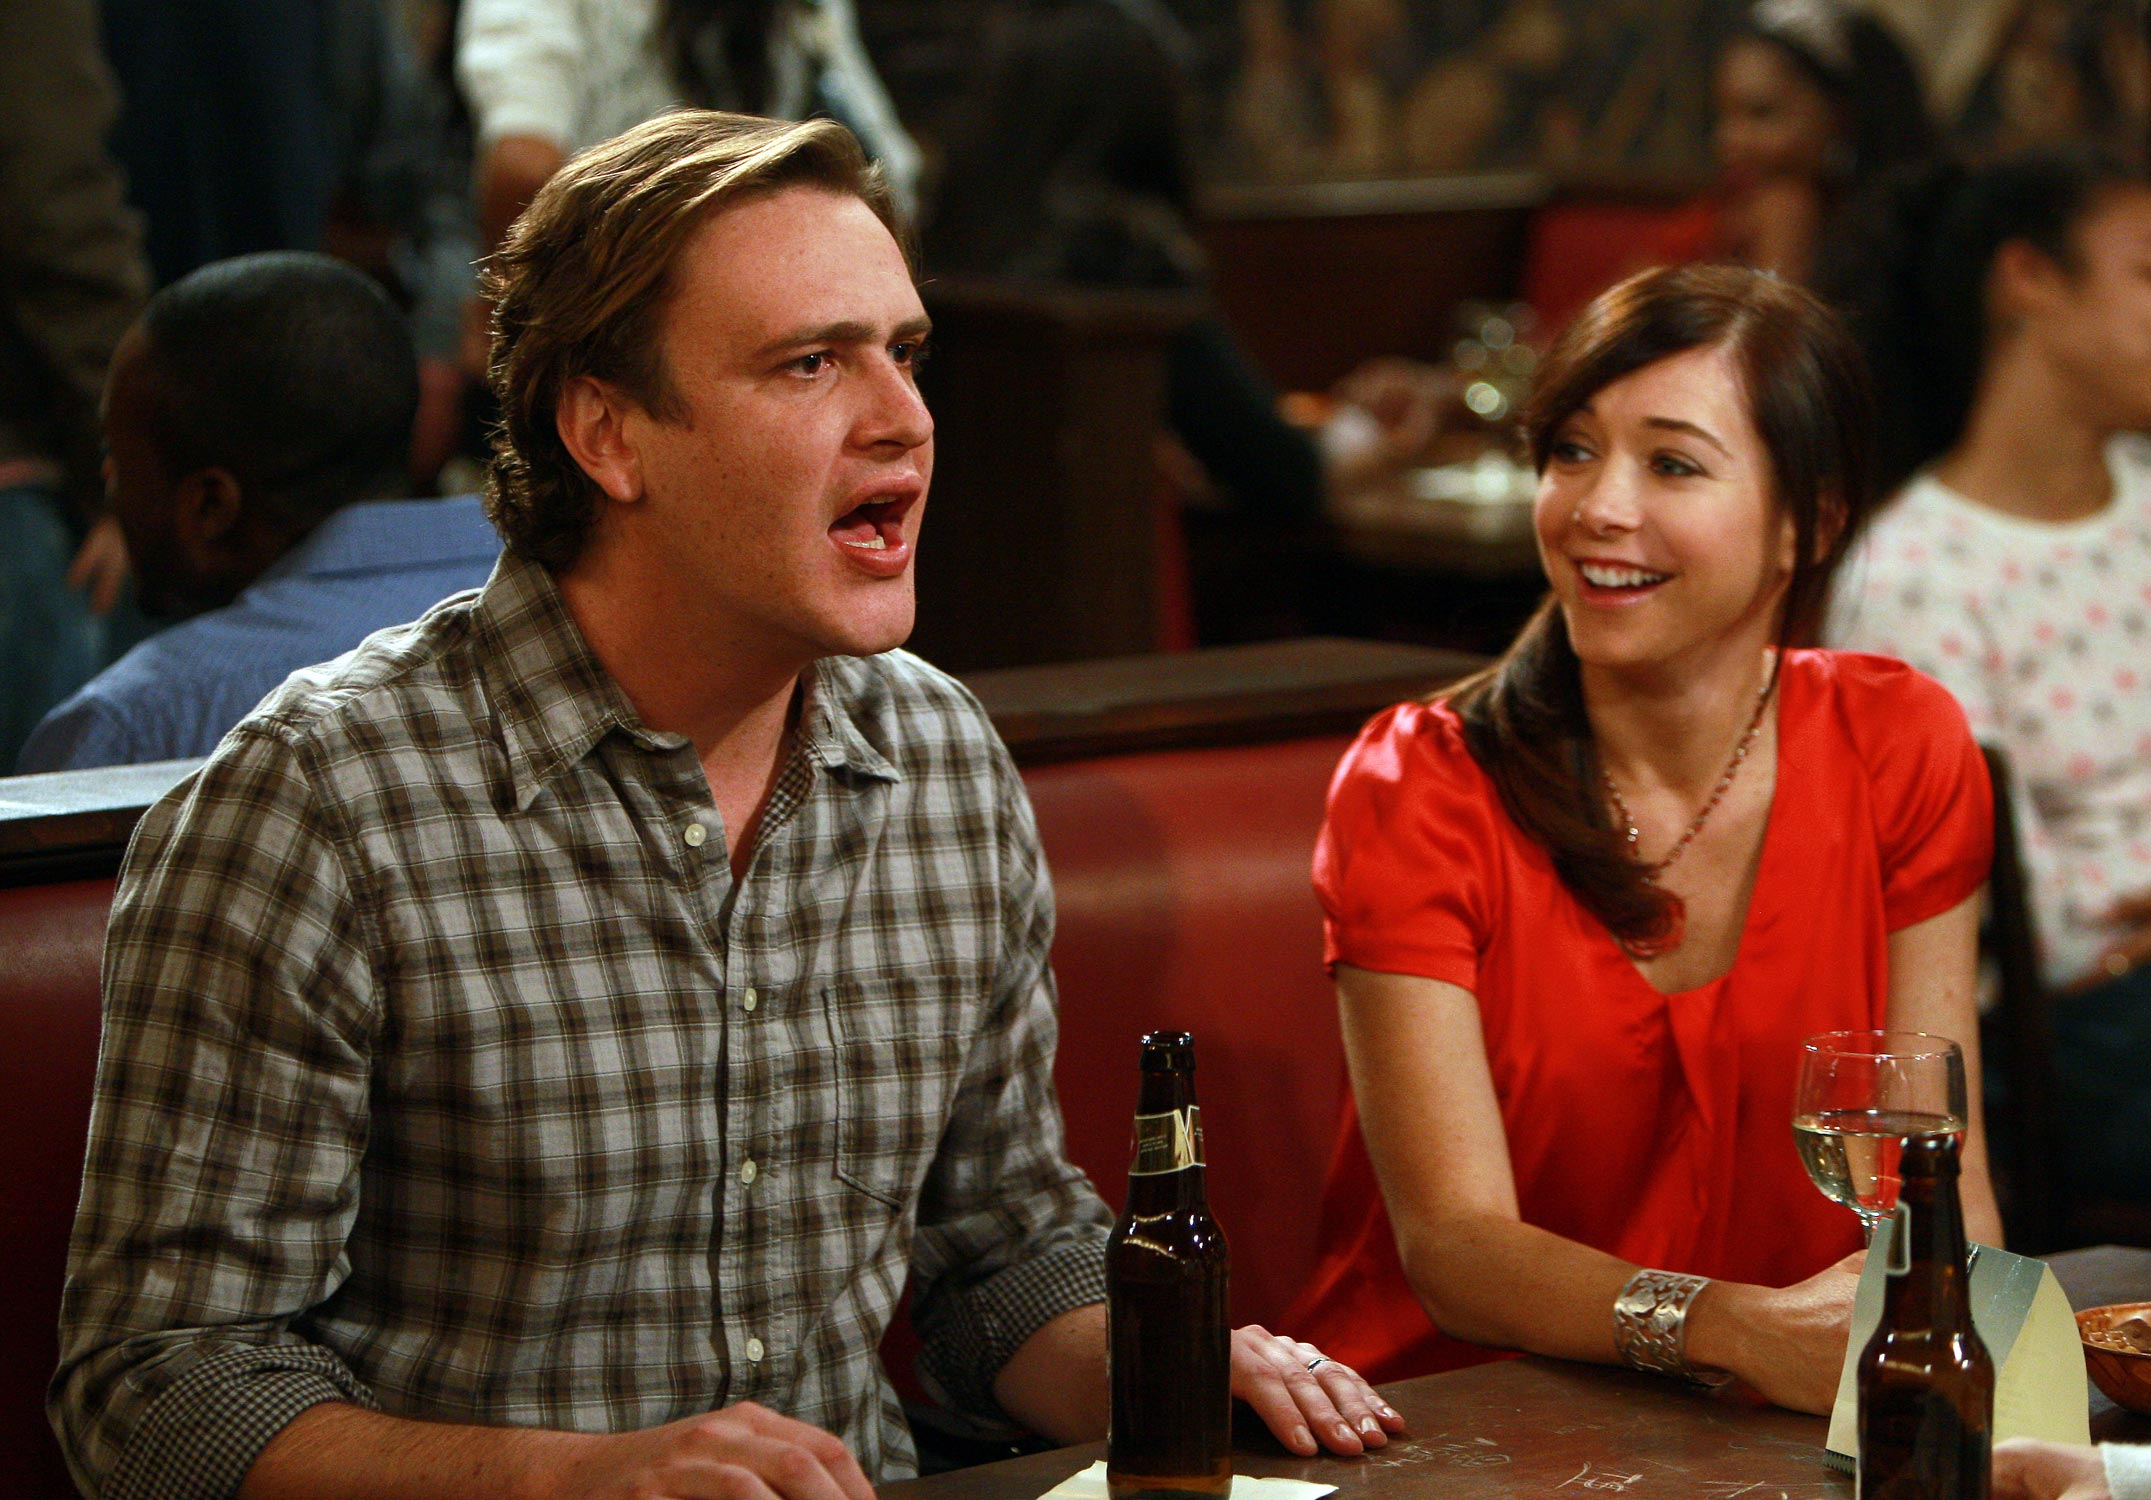 Marshall & Lily - How I Met Your Mother (source: www.whedon.info)